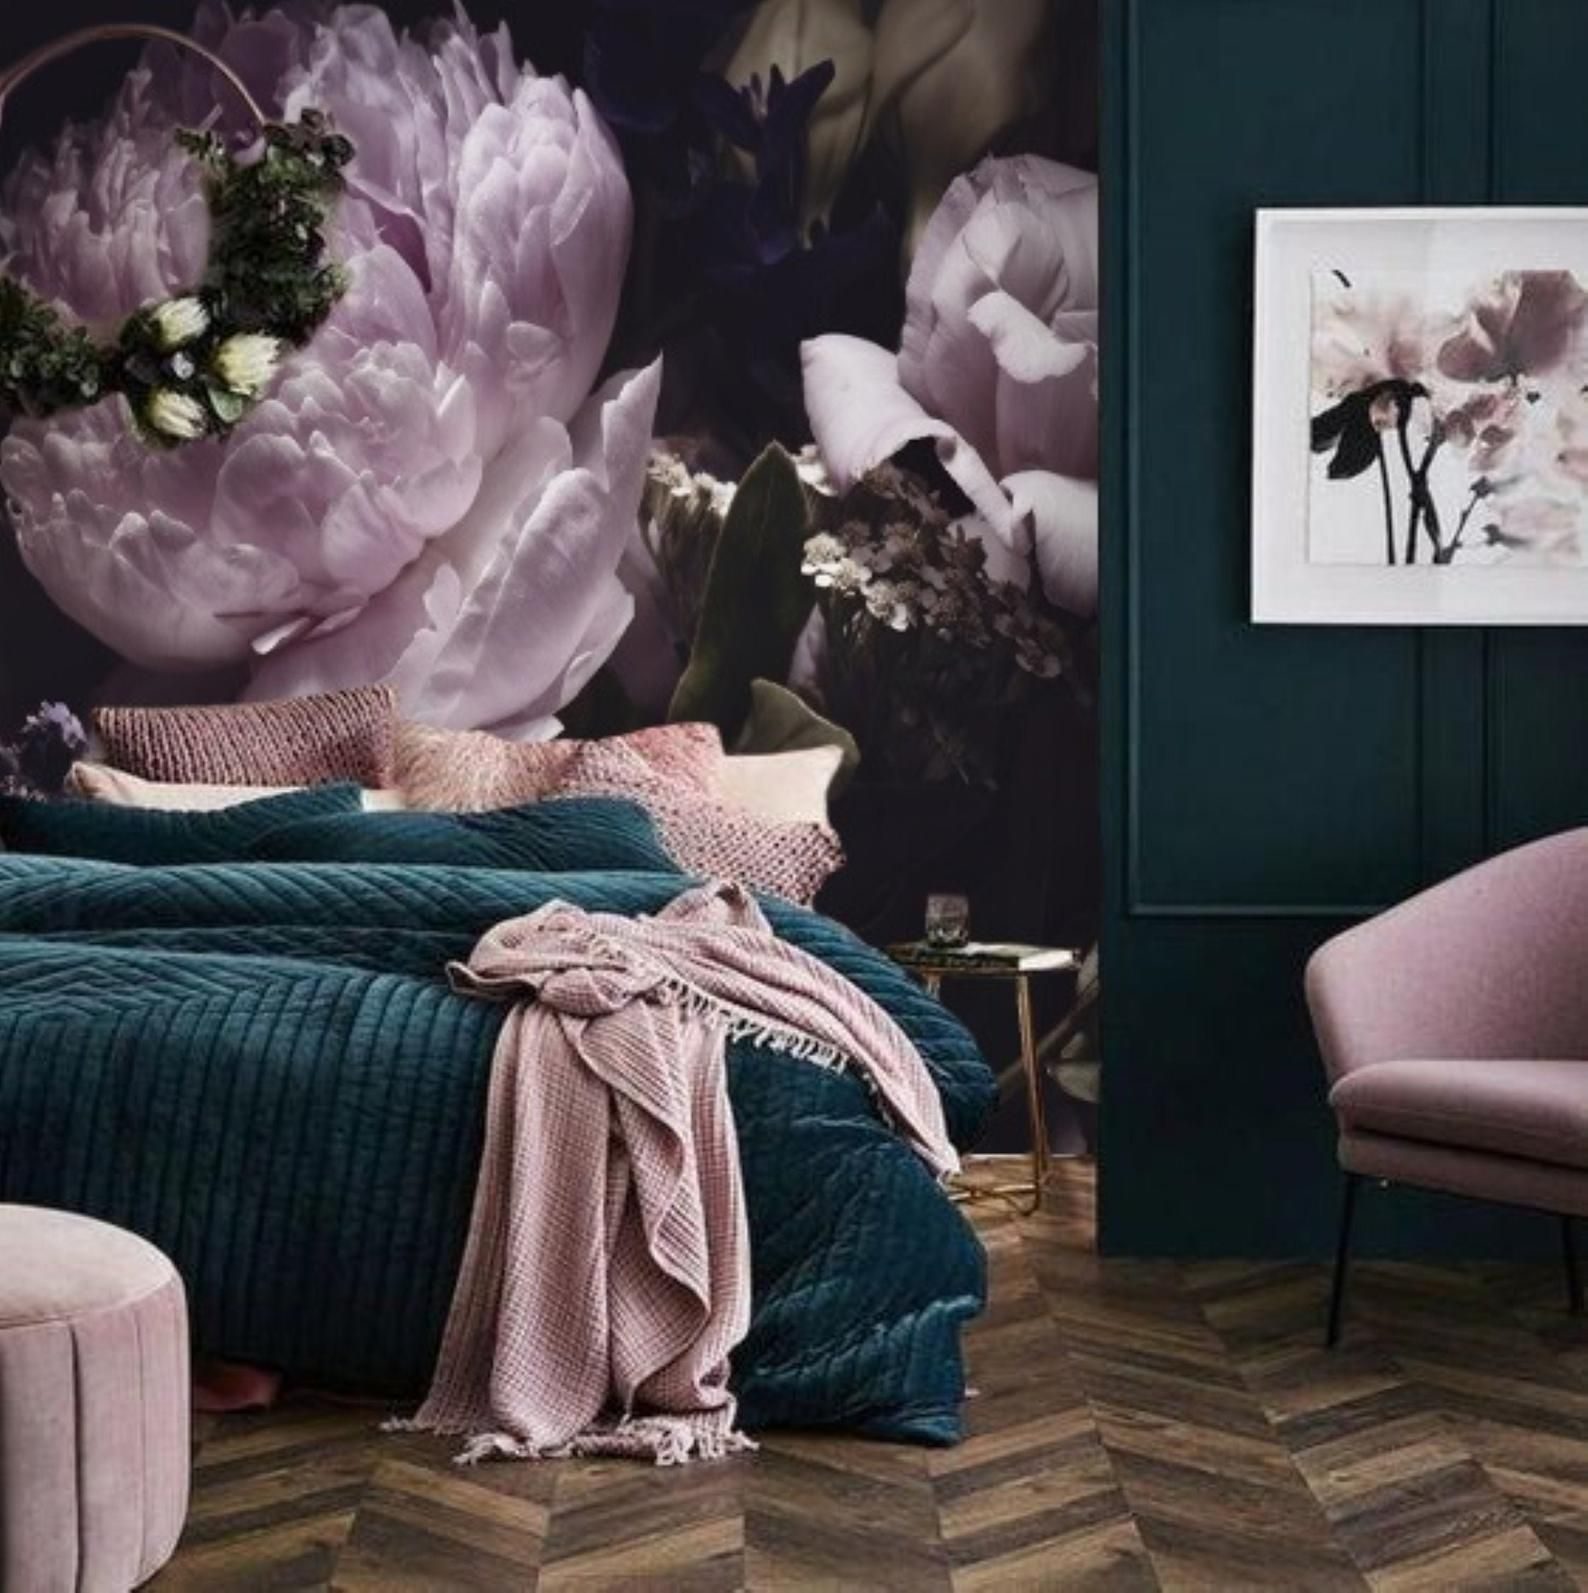 Bright Purple Peonies Wallpaper Mural Dark Floral Removable Wallpaper Peel And Stick Large Flower Wallpaper Black Floral Wallpaper 171 Black Floral Wallpaper Peony Wallpaper Large Flower Wallpaper